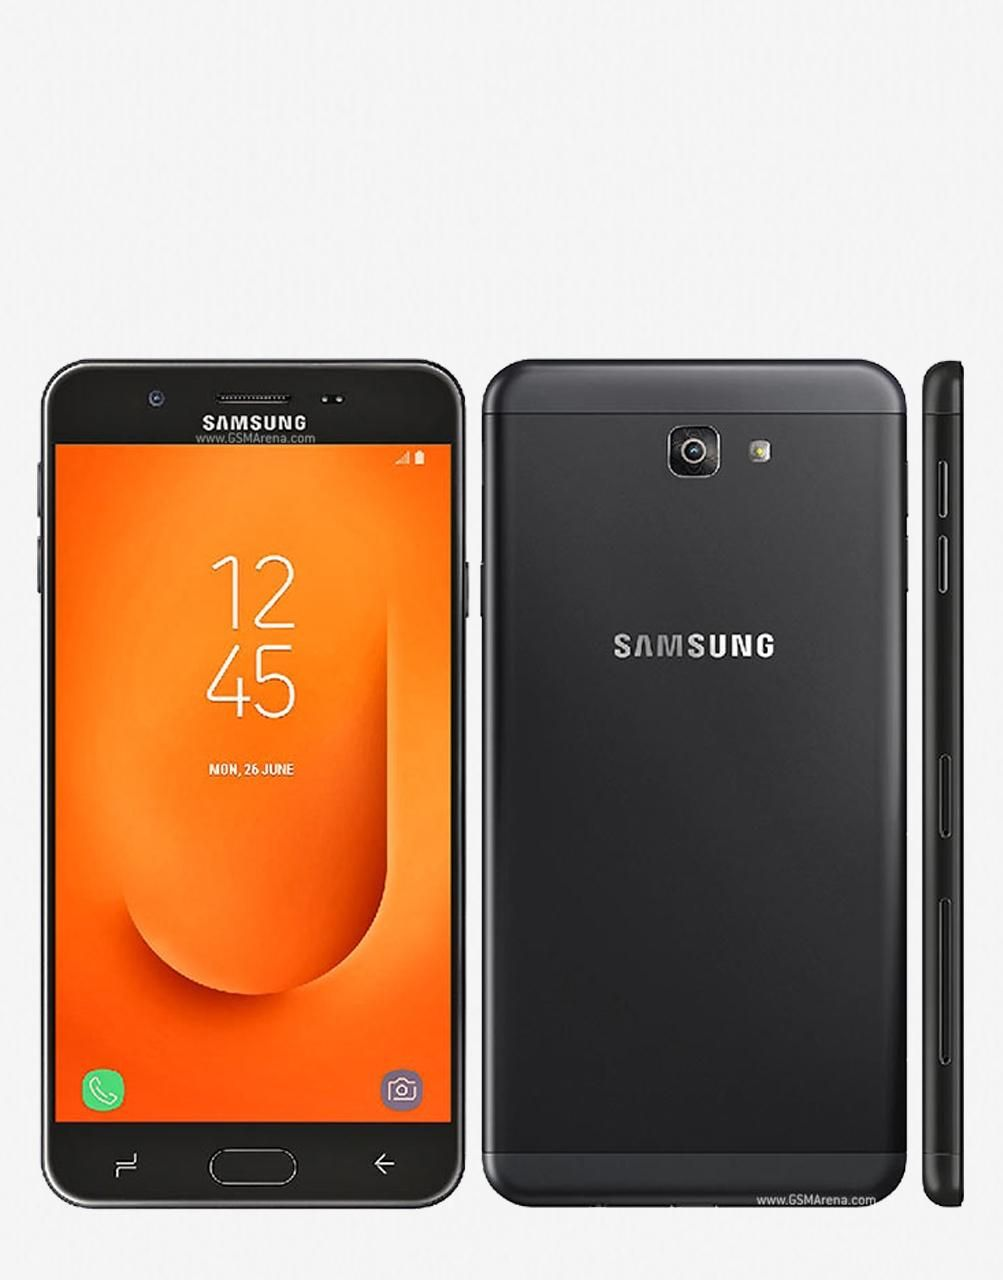 Pin by Dialcom on Dialcom Offers | Mobile phone price, Samsung